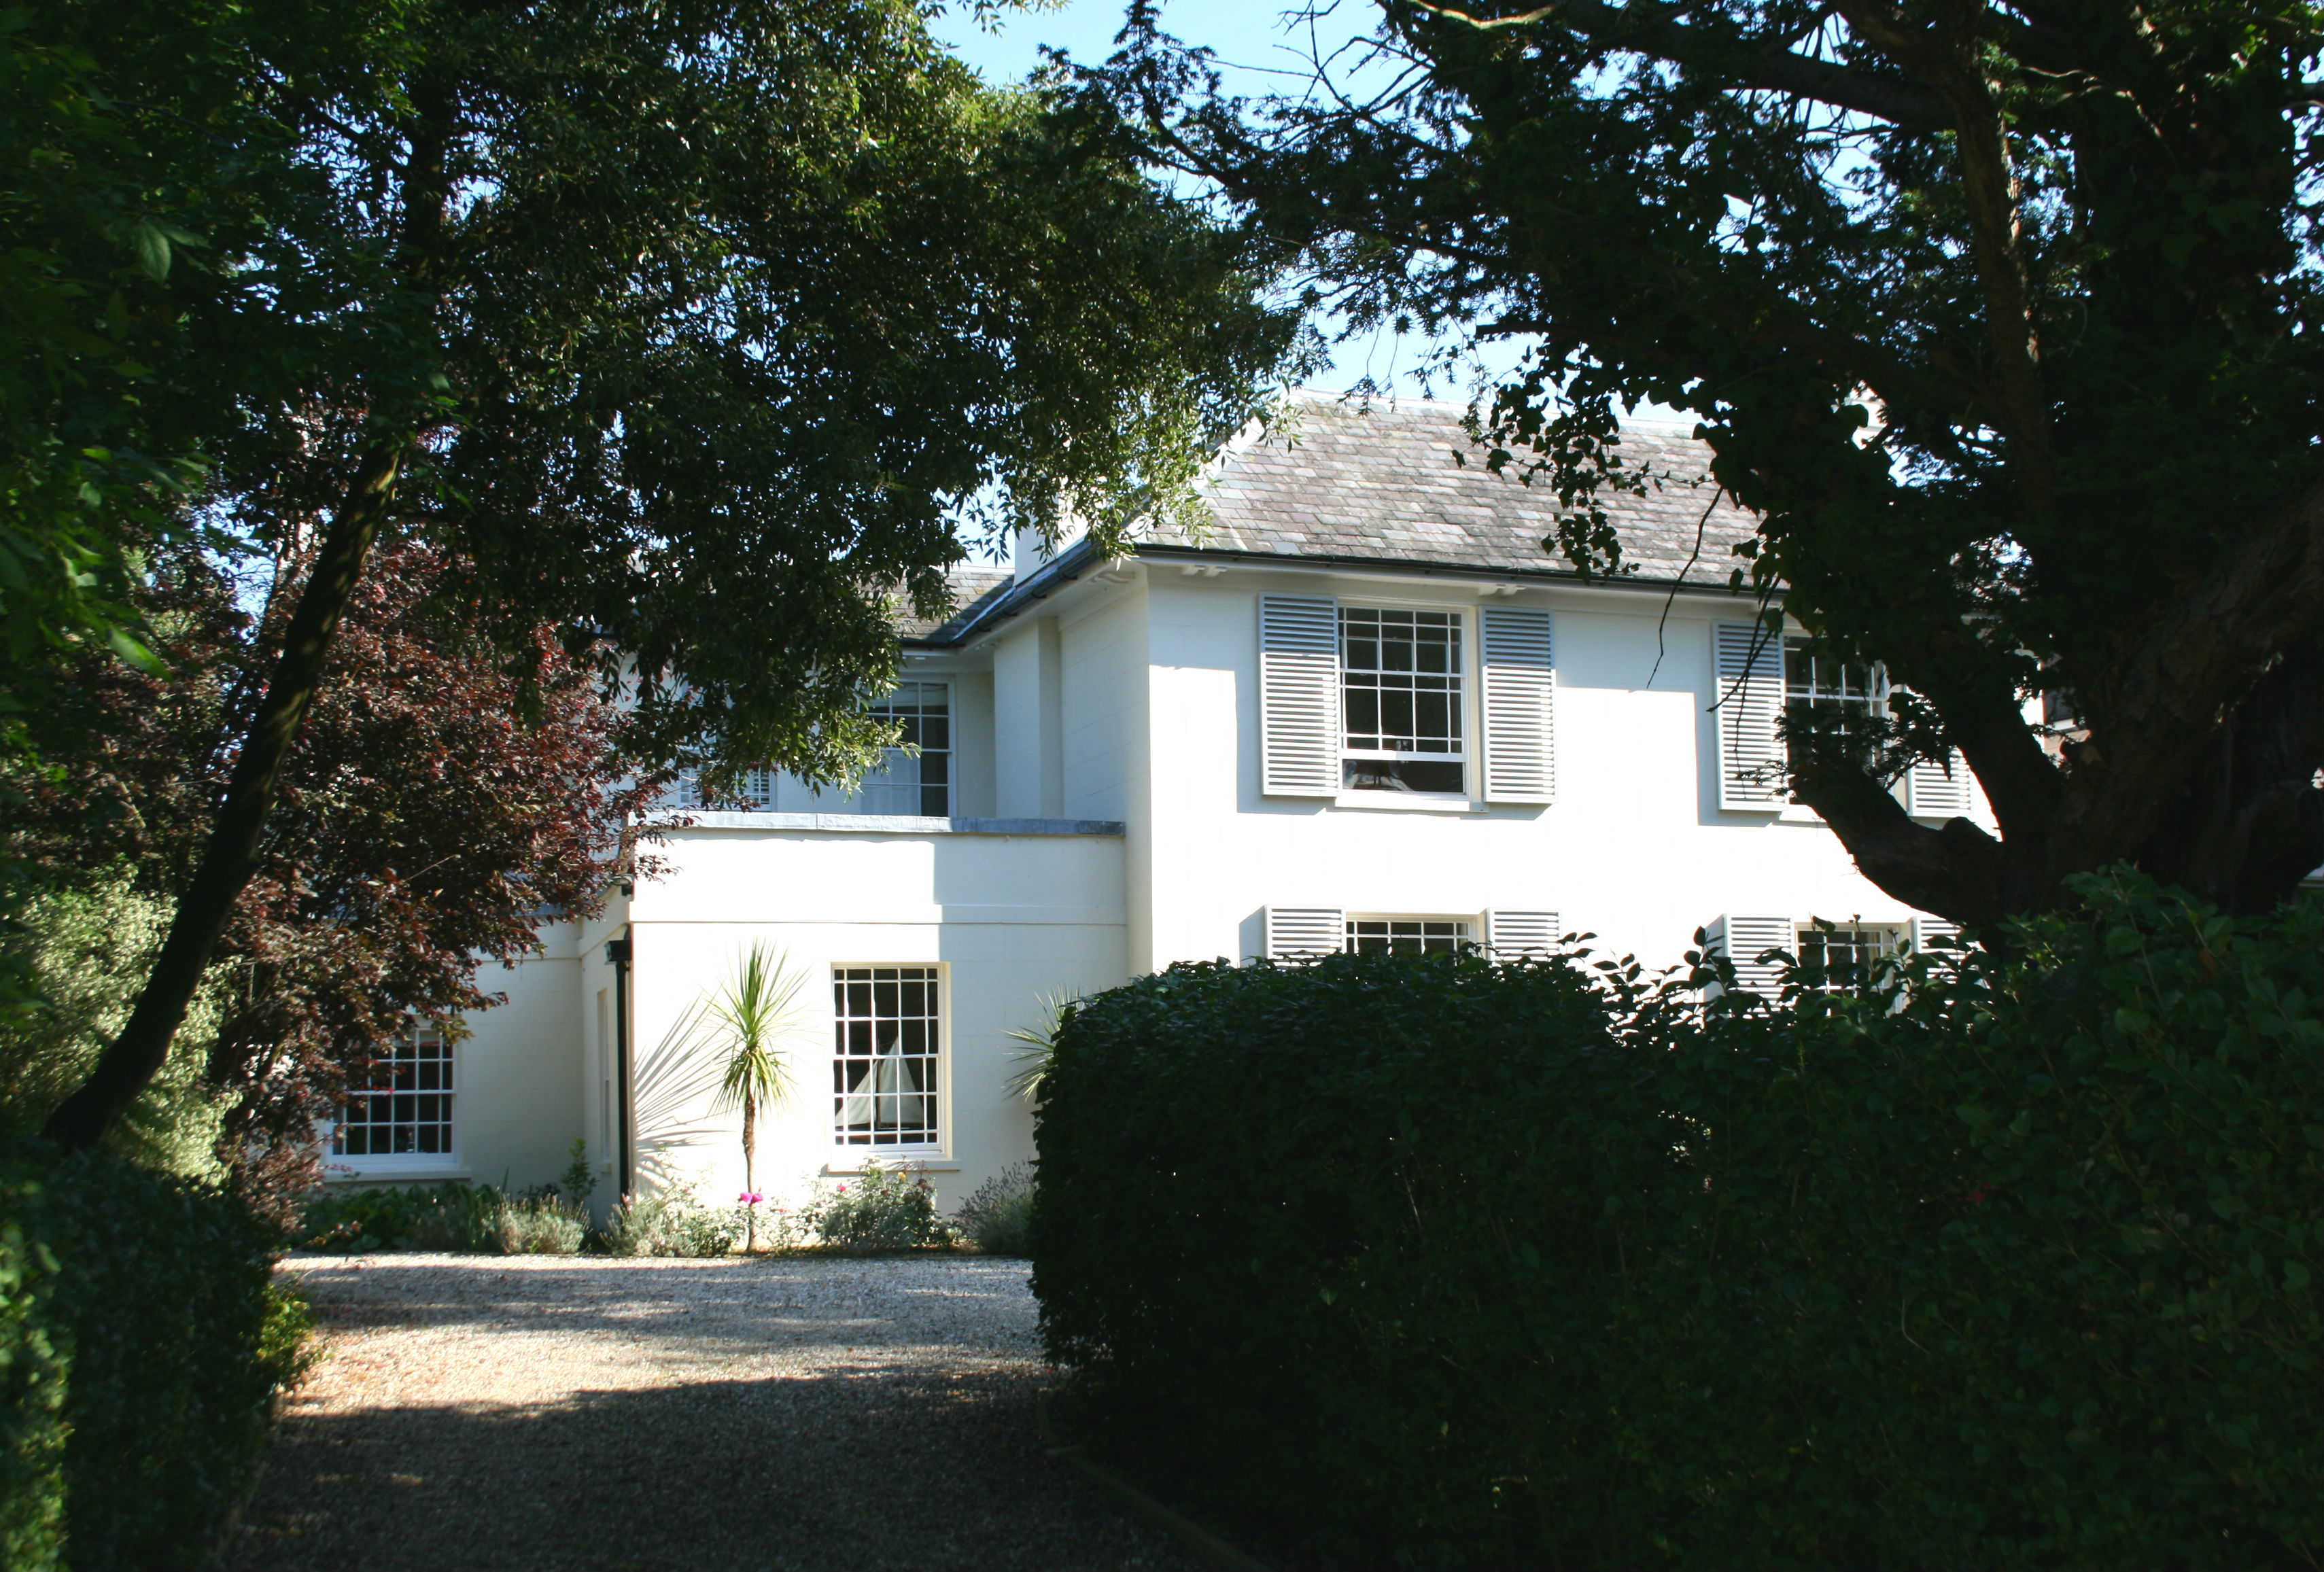 Wodehouse's Uncle Walter's house